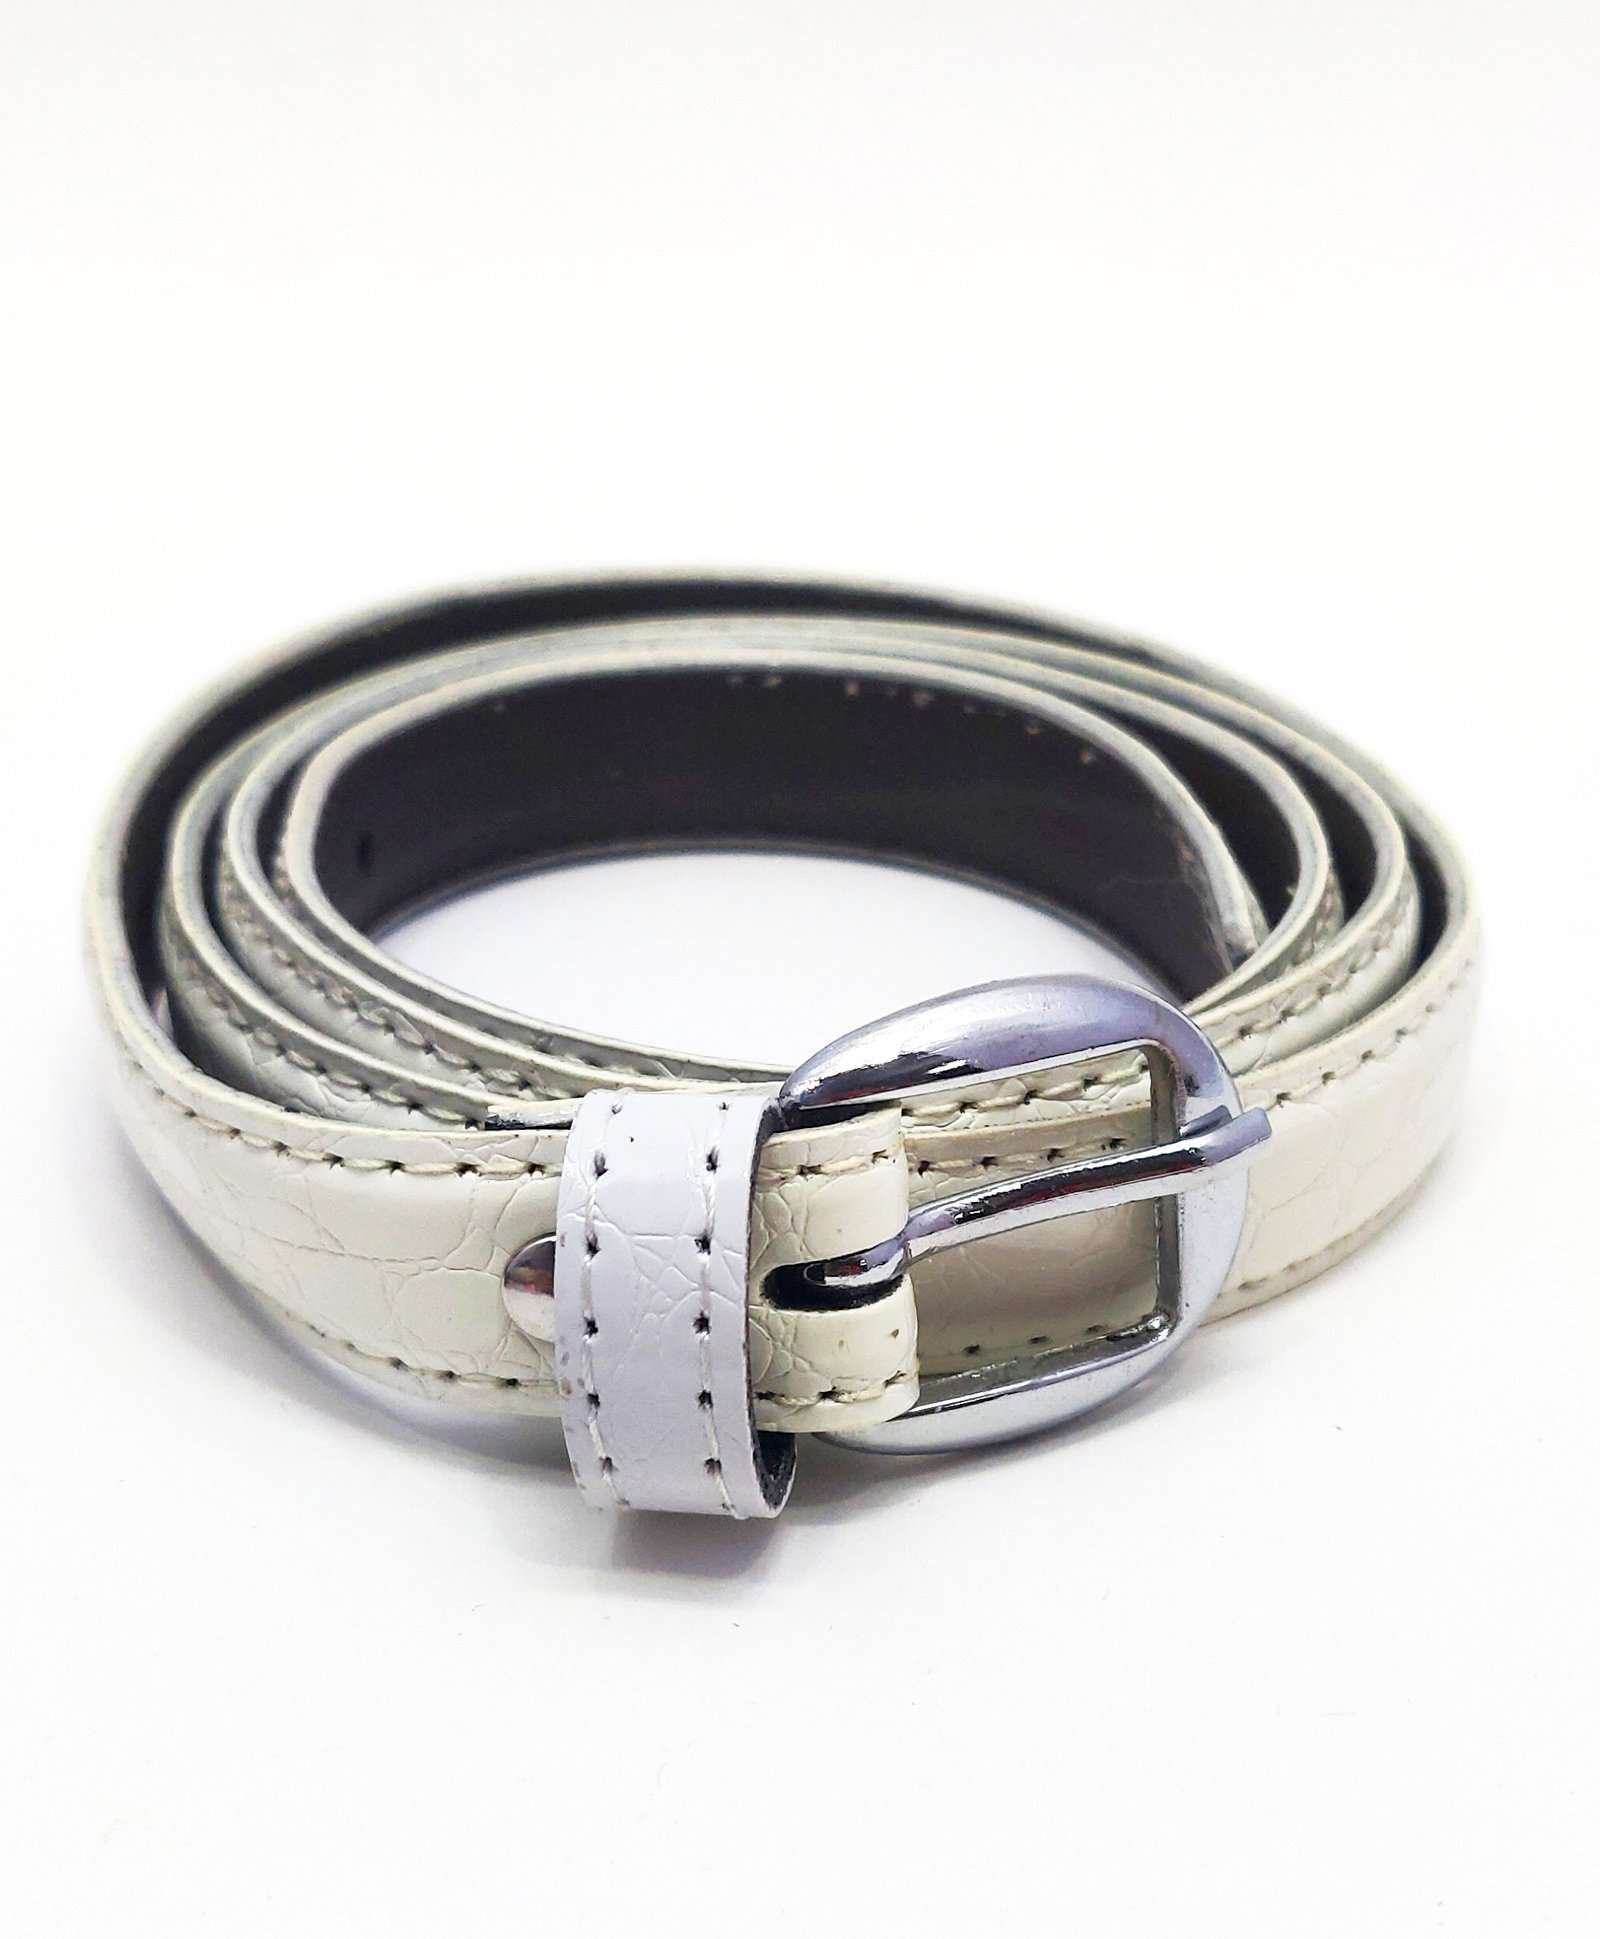 833daf64cf3 Buy KidOWorld Textured Belt White (5-12 Years) Online in India, Shop at  FirstCry.com - 2743255